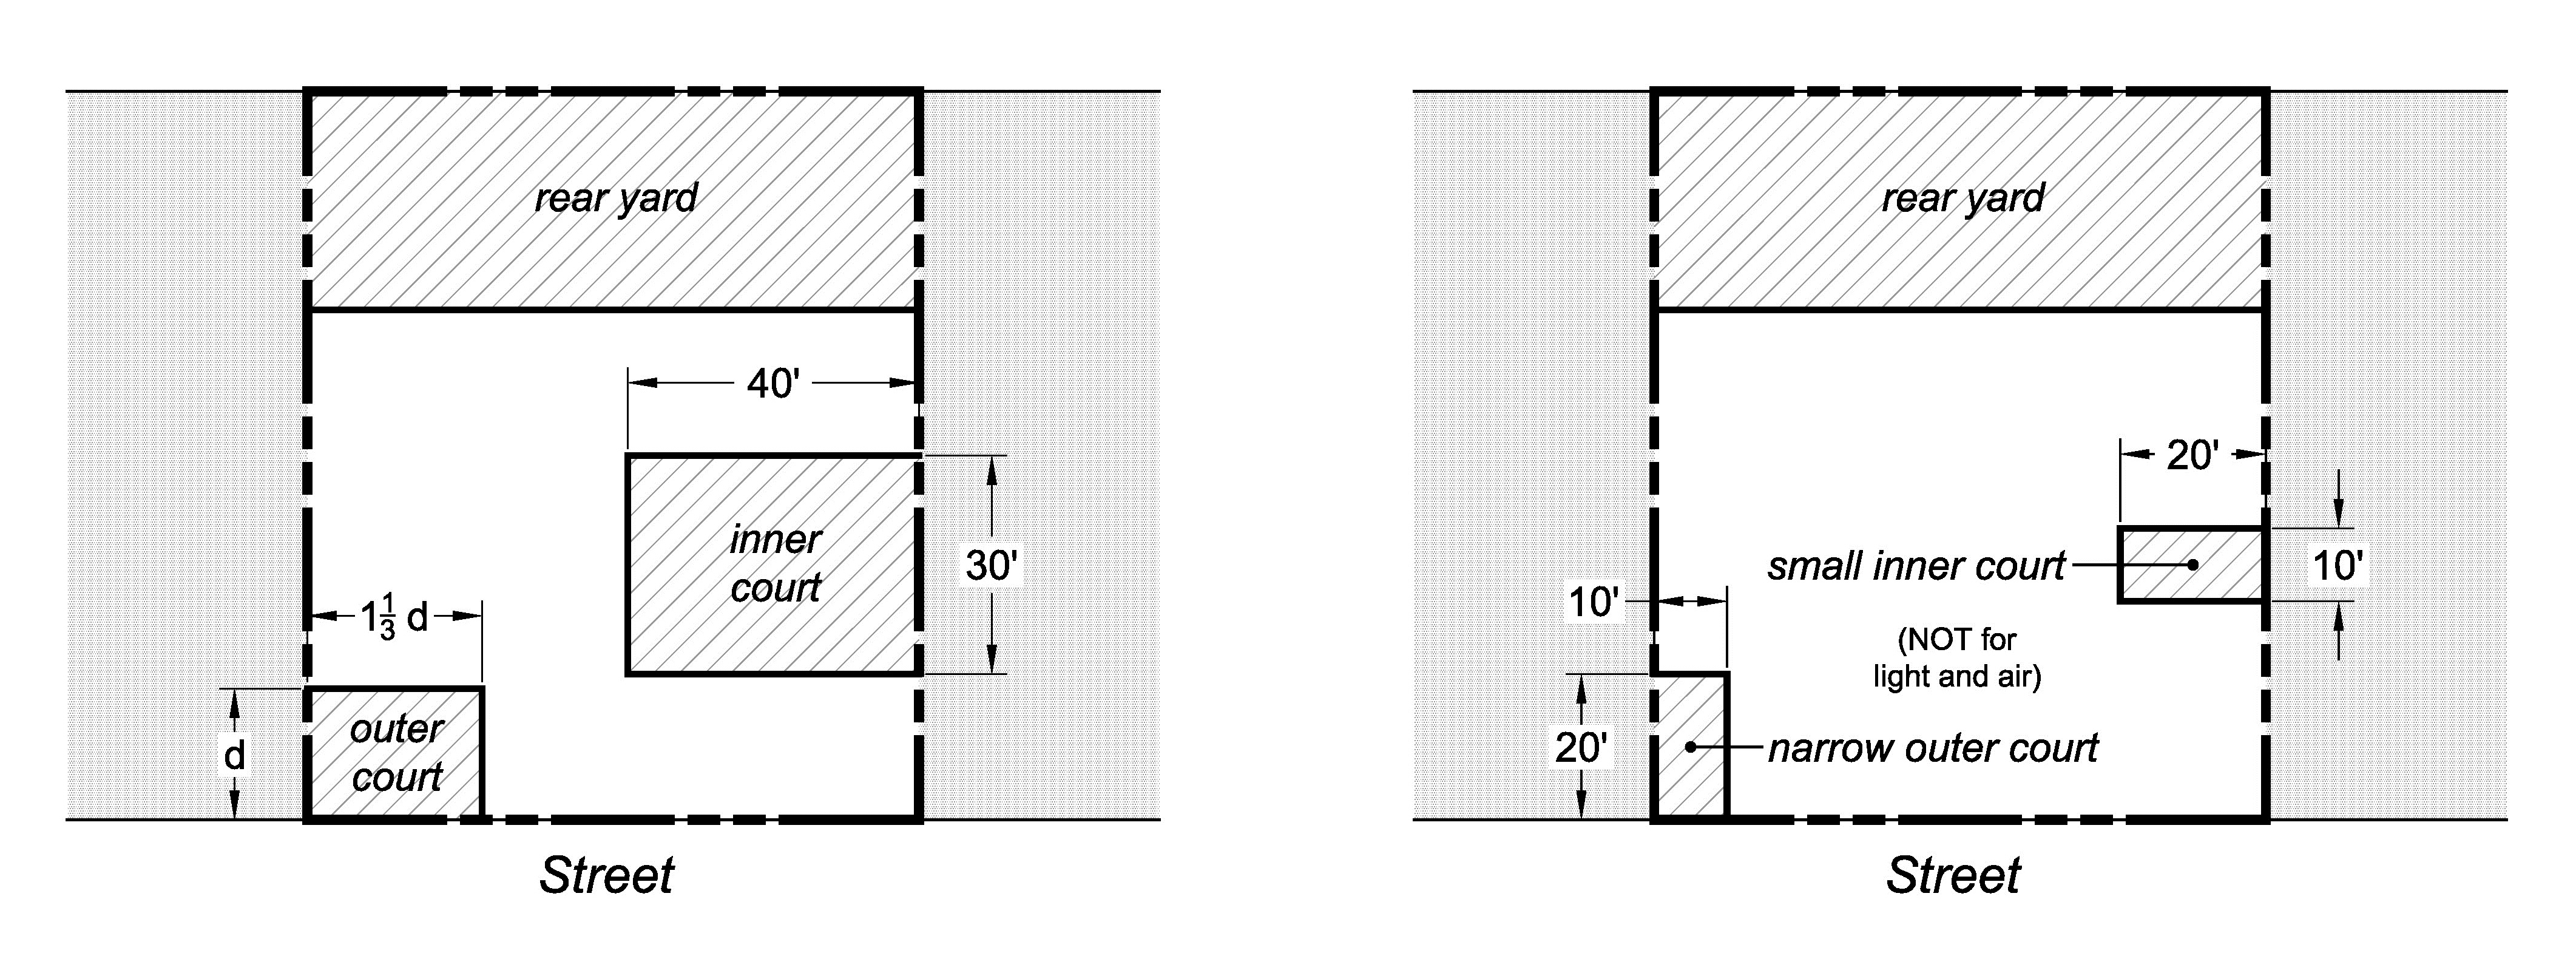 Vidaris blog update lee ping kwan edwin tang robert limandri how to maximize floor area with zqa zoning for quality and affordability ccuart Gallery